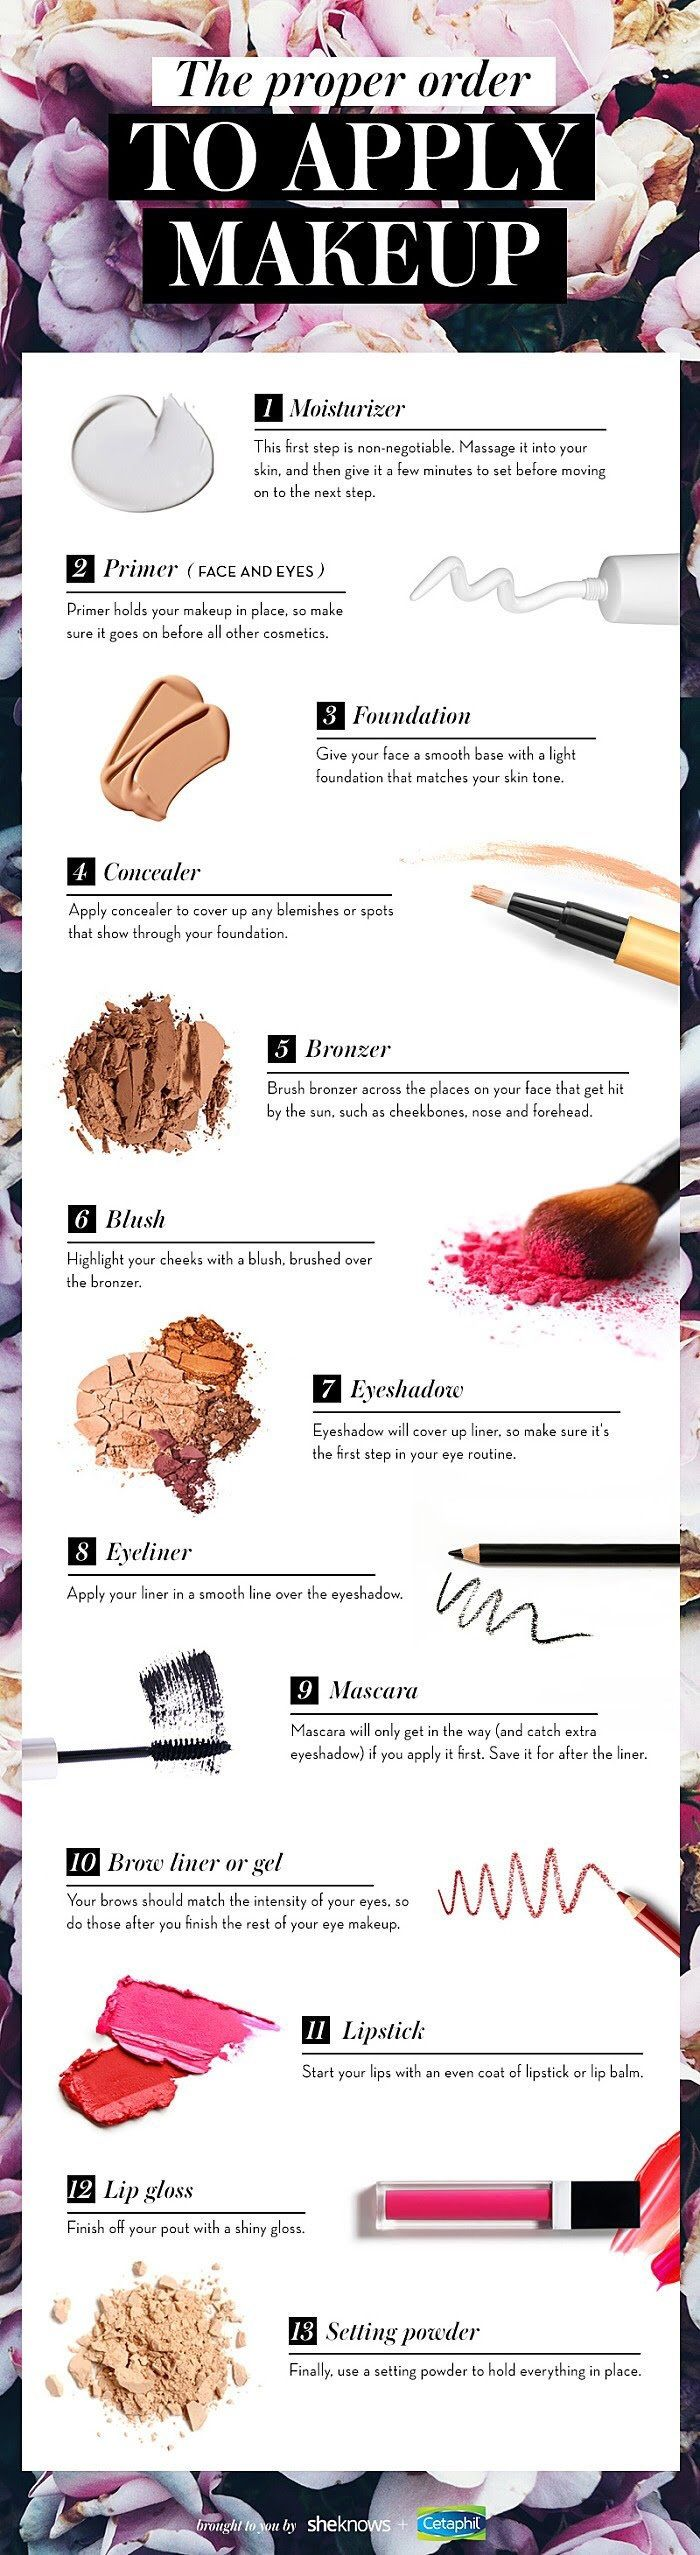 18 Little Makeup Tricks That Actually Work